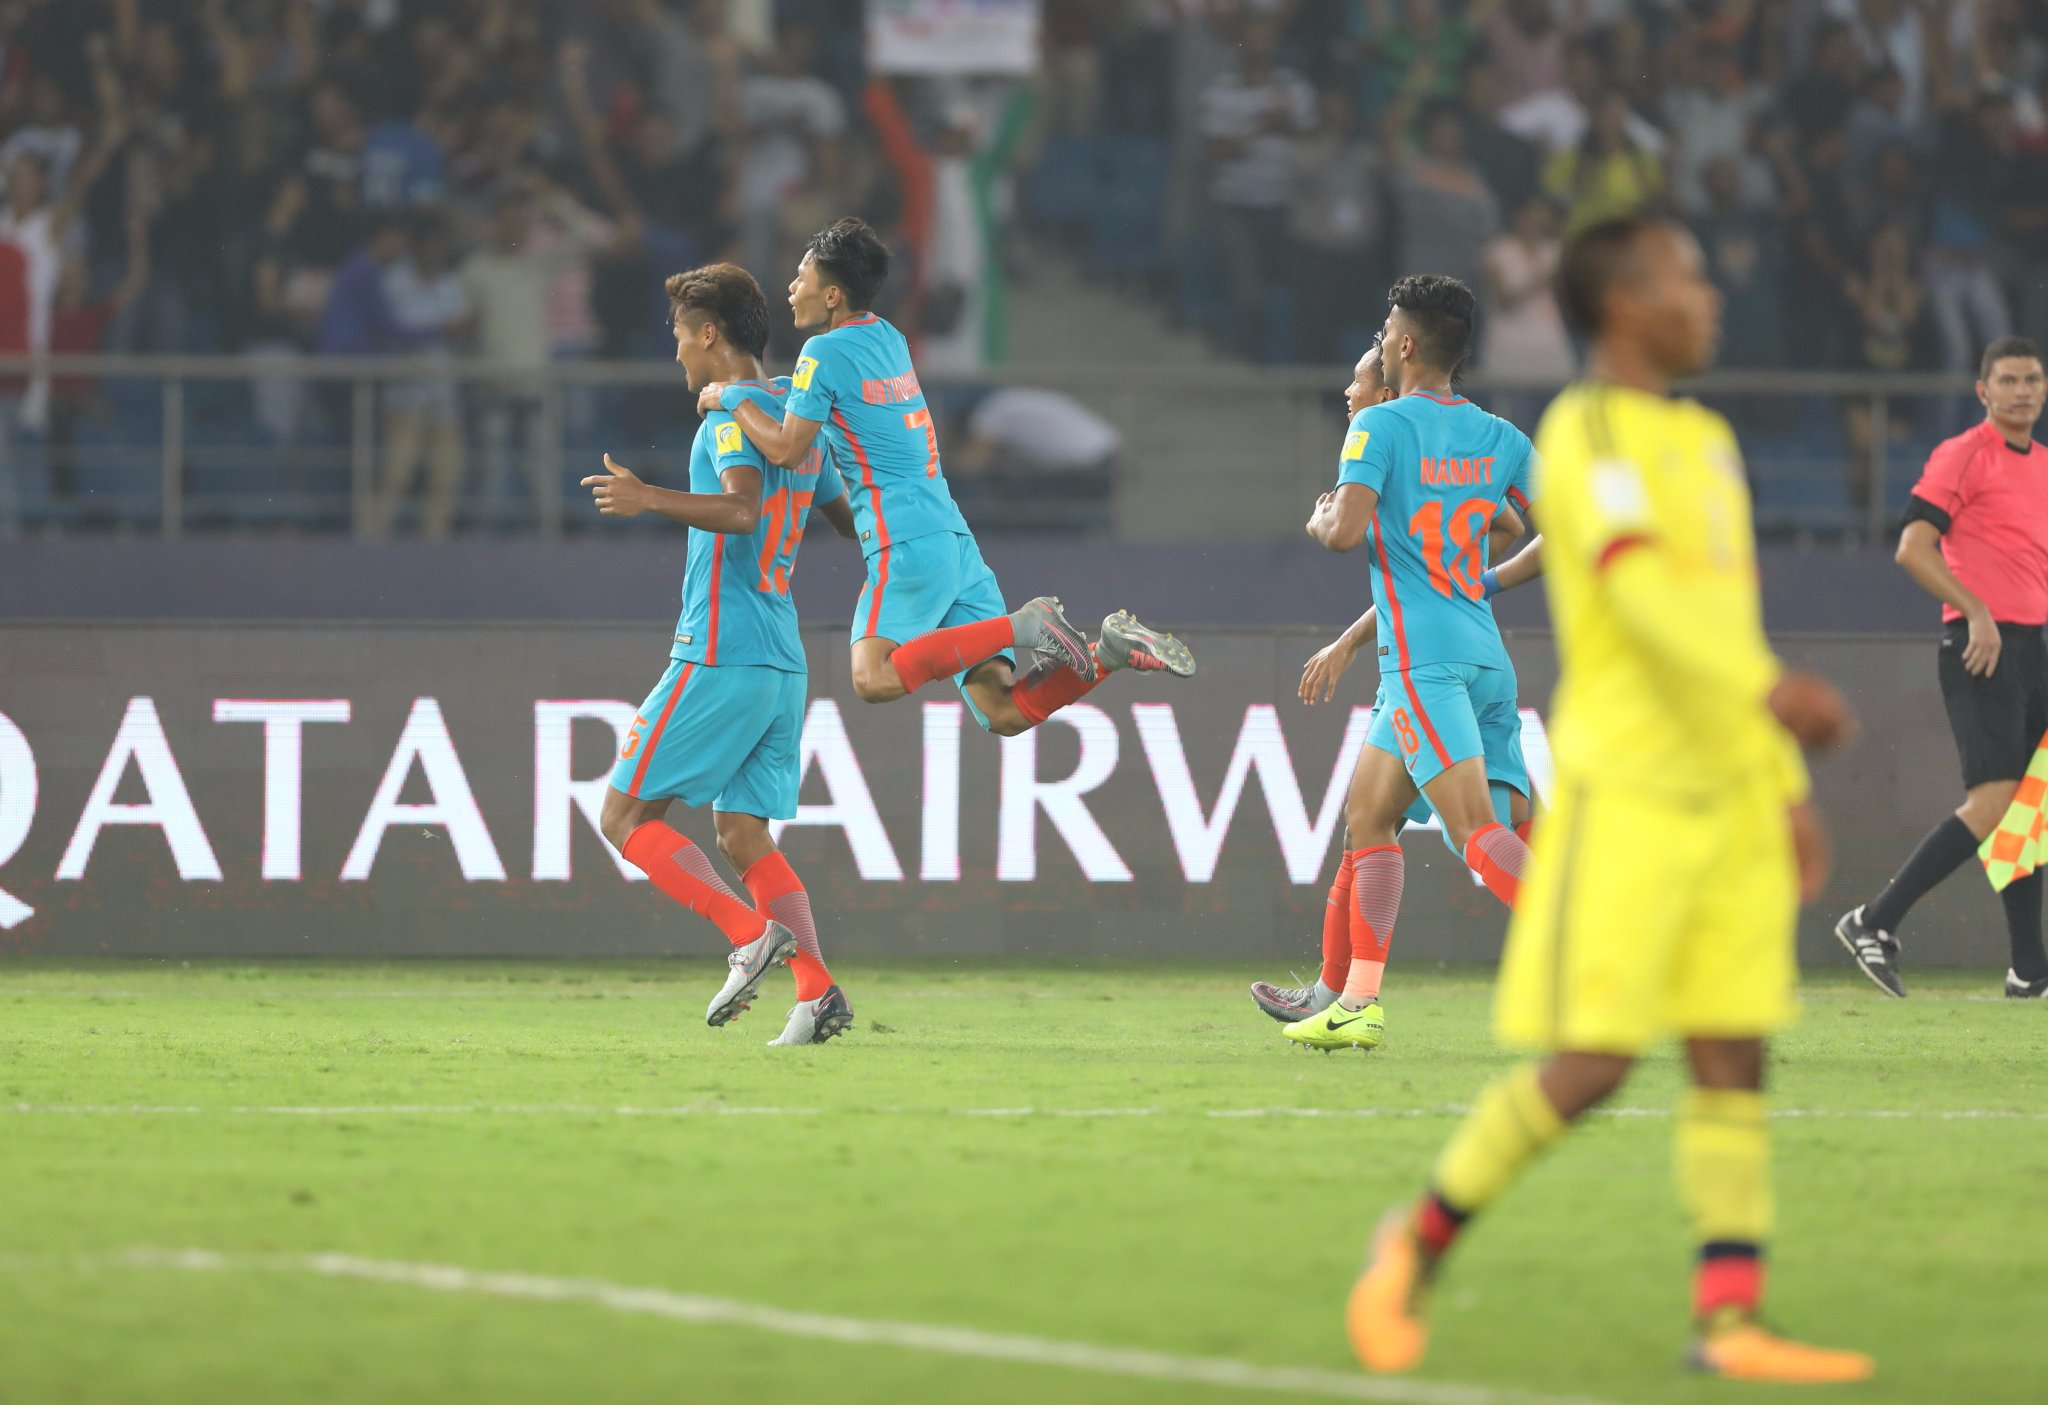 Goal celebrations at the World Cup, a first for India. (Image courtesy: AIFF Media)